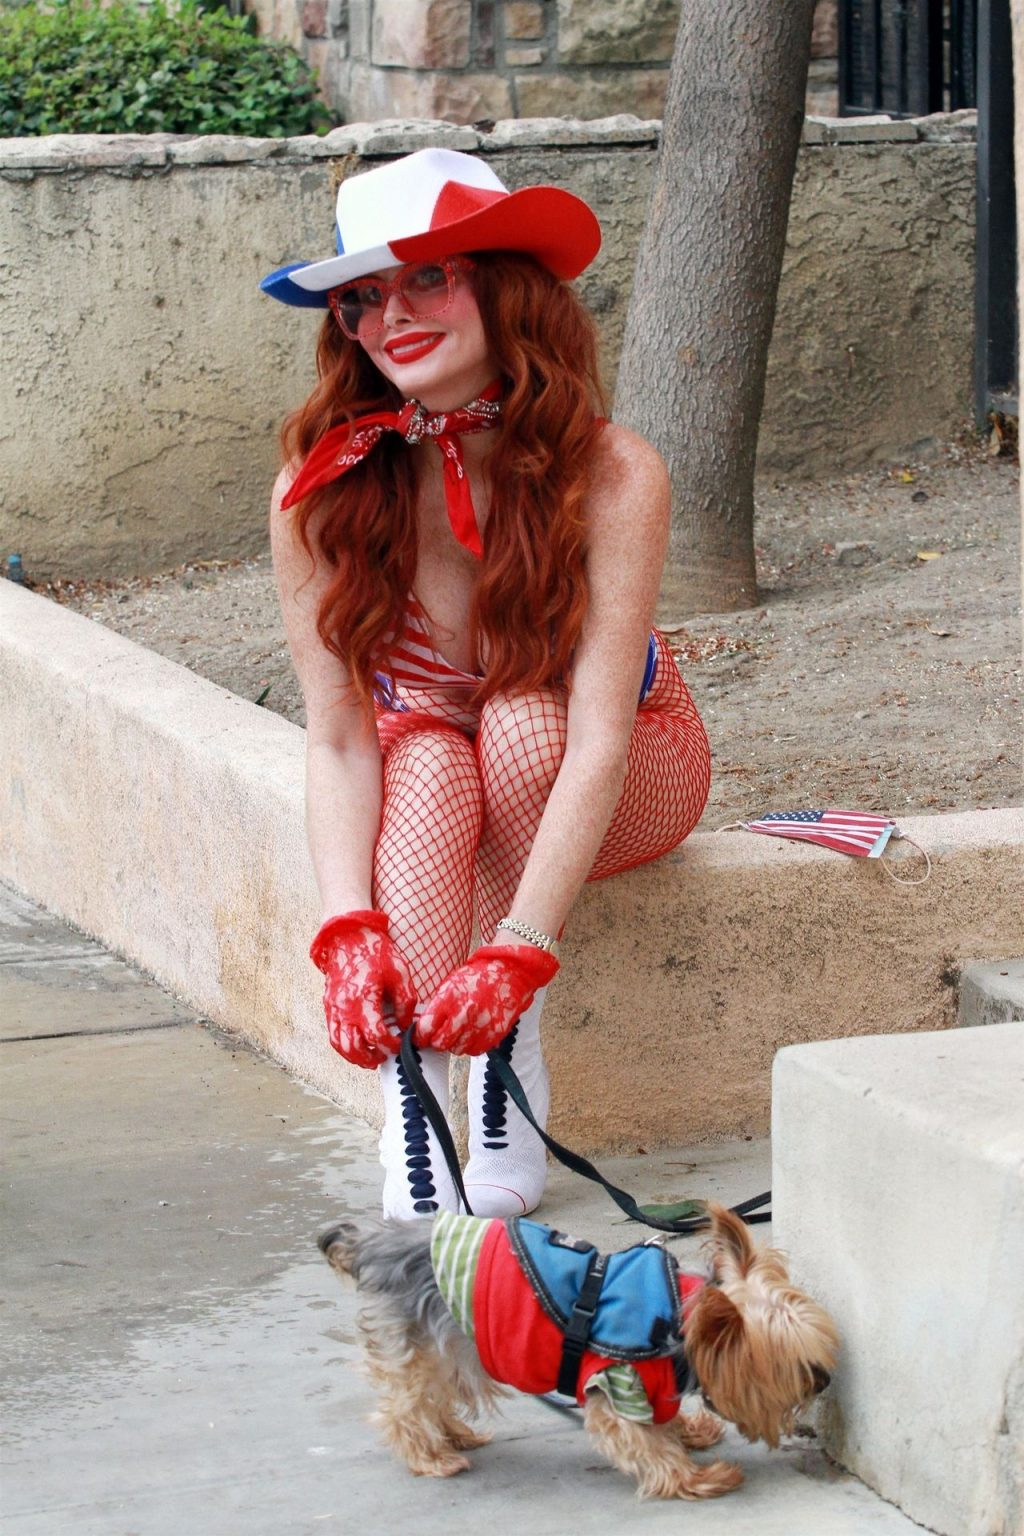 Phoebe Price Poses in a Patriotic Outfit (33 Photos)